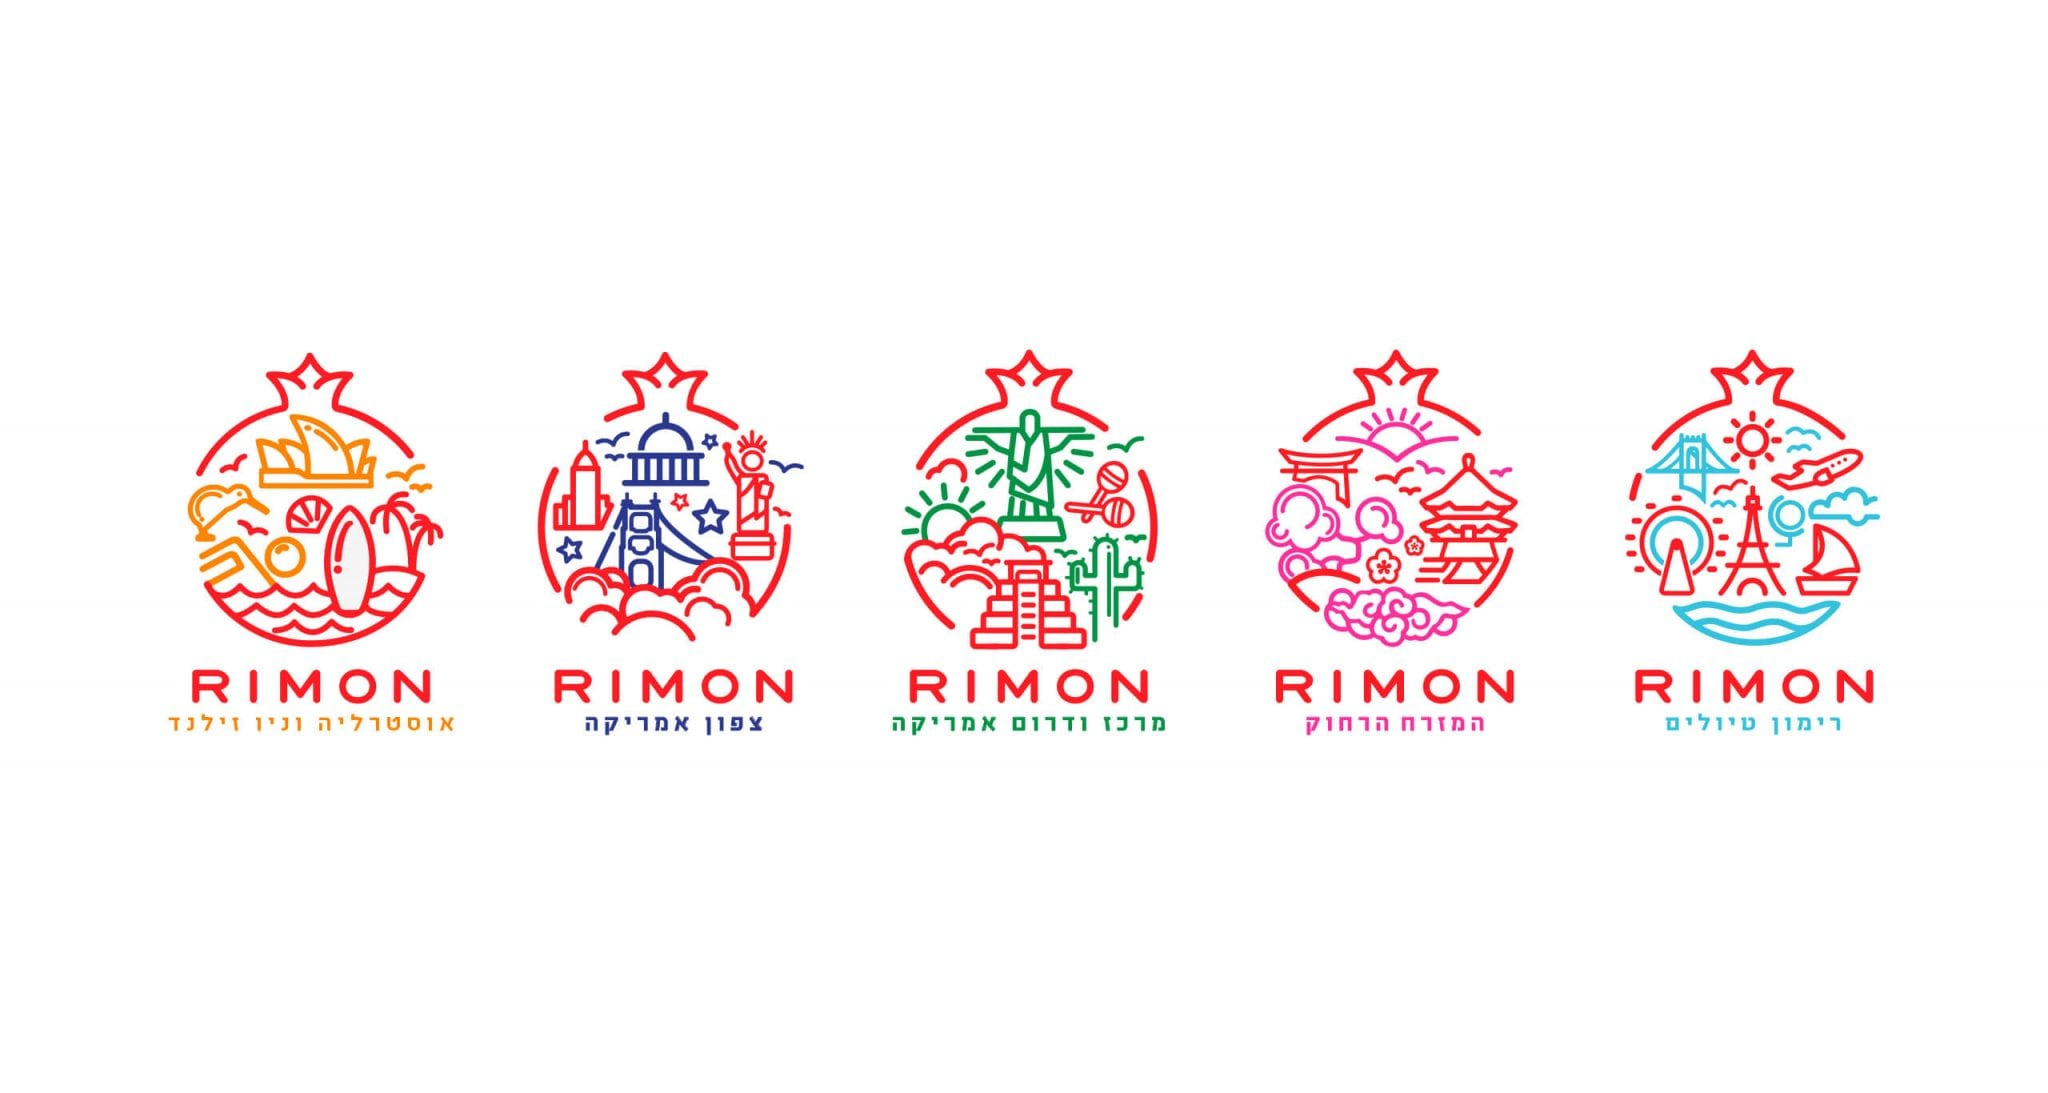 Rimon_main8